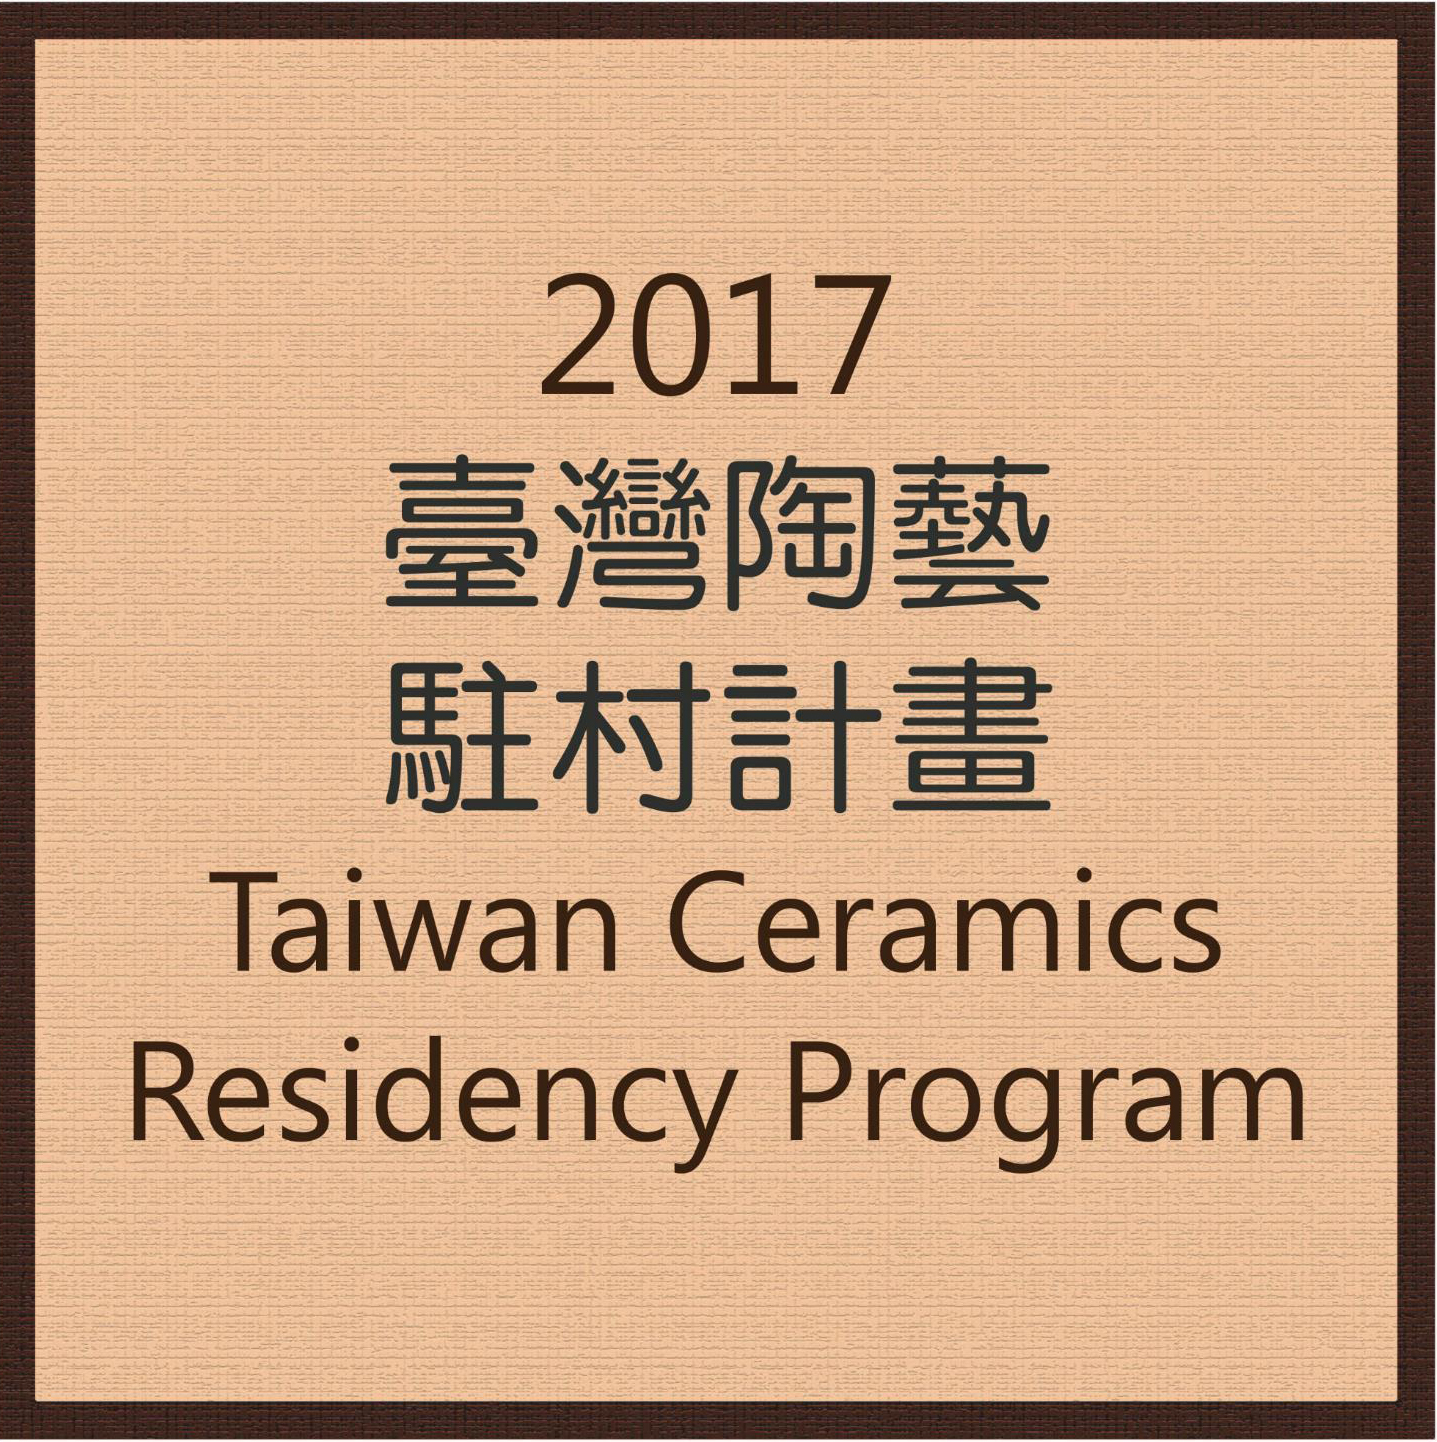 2017 Taiwan Ceramics Residency Program WANTED! (Deadline: Aug 12)